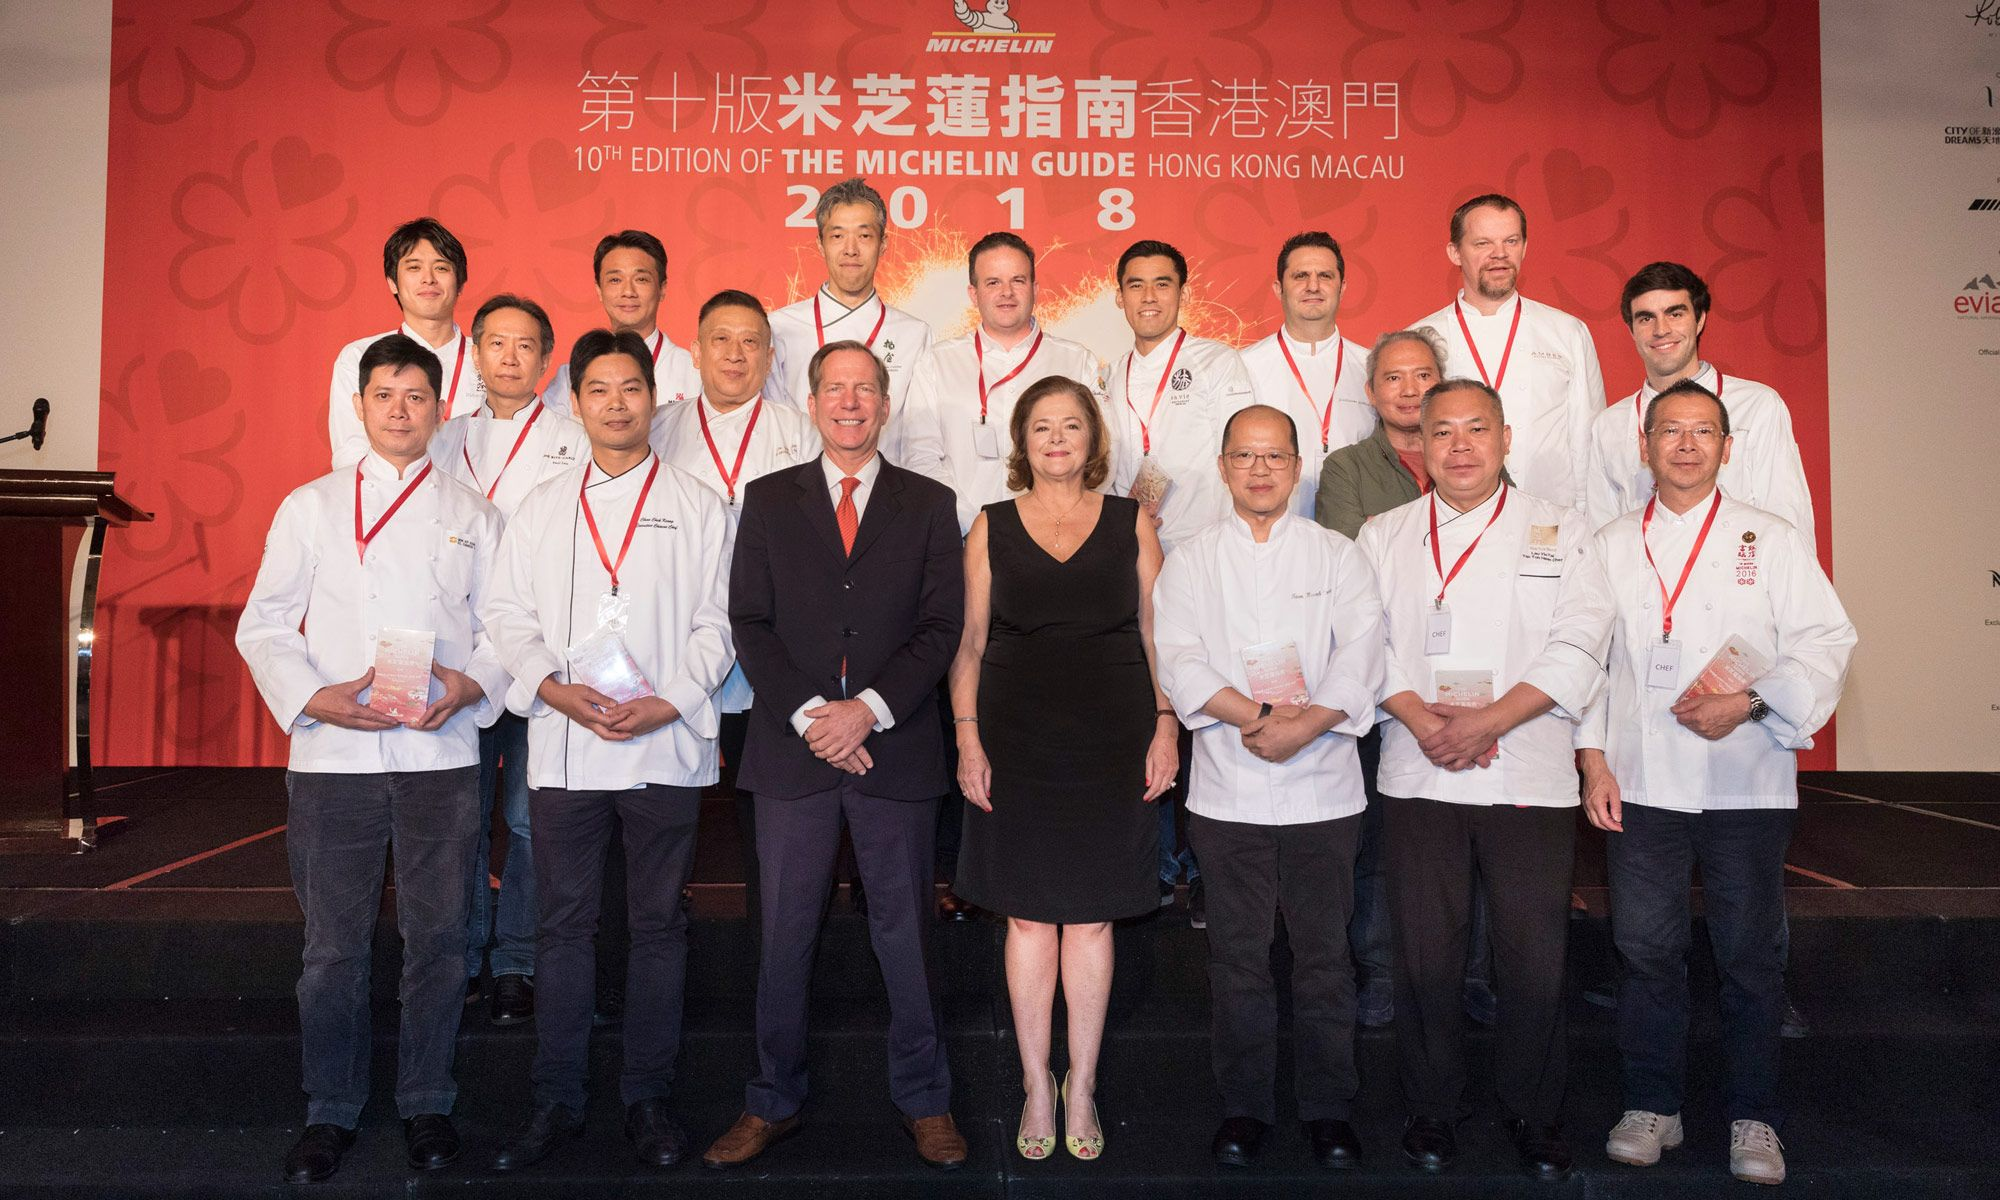 The Michelin Guide Launches Its Hong Kong and Macau Edition 2018